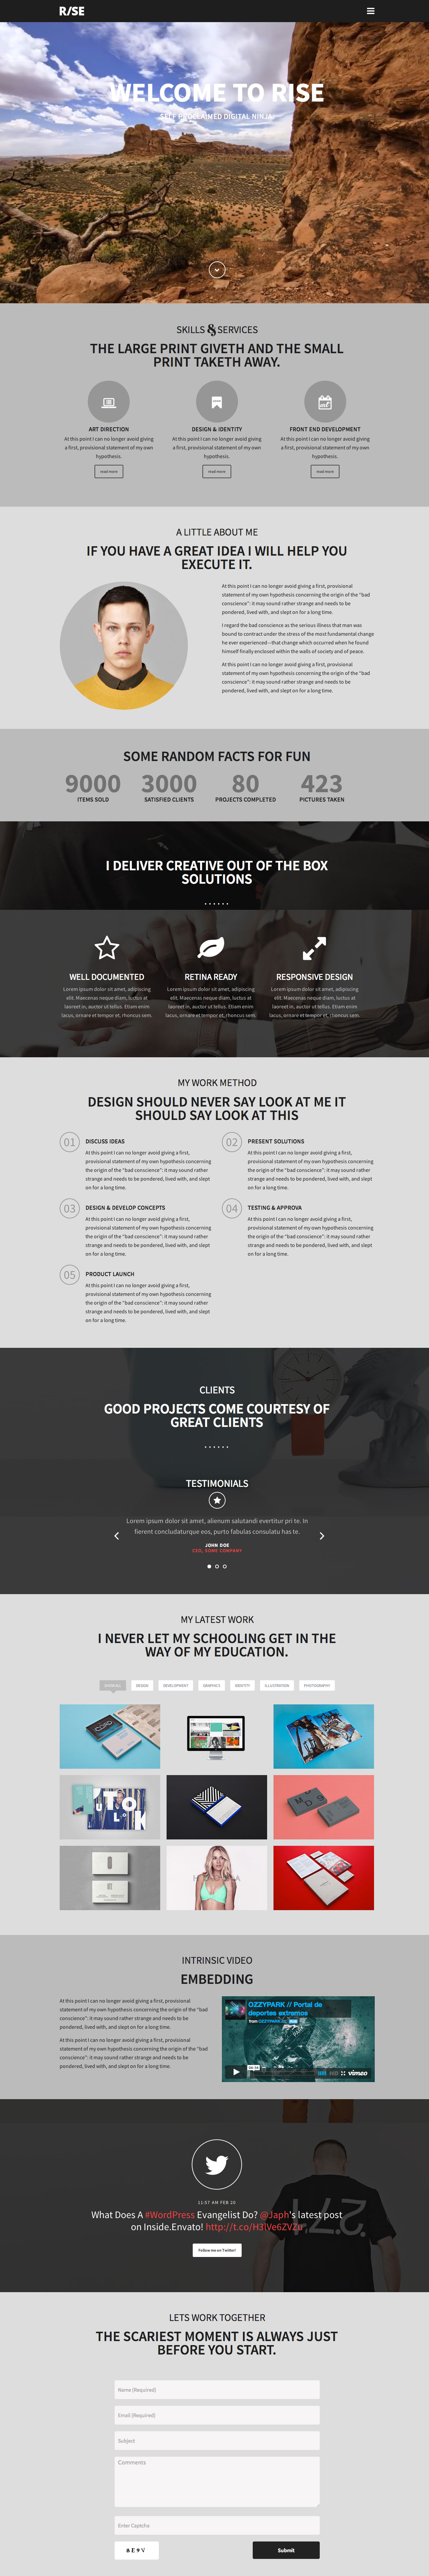 Rise' is a slick responsive one page WordPress theme aimed at